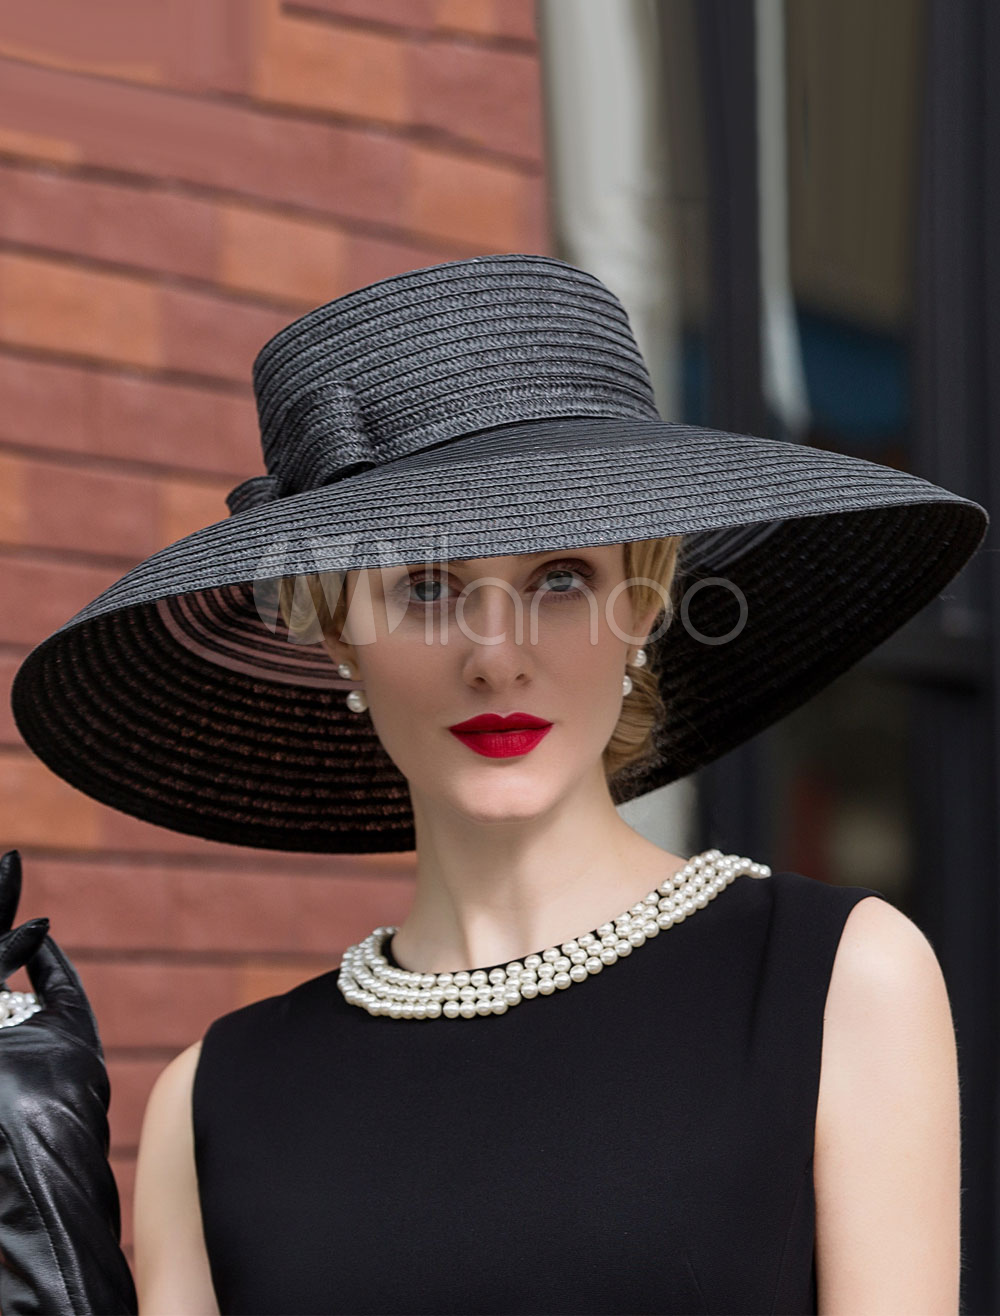 Buy Vintage Costume Hat Black Audrey Hepburn Wide Brim Bow Sun Hat For Women Halloween for $34.99 in Milanoo store